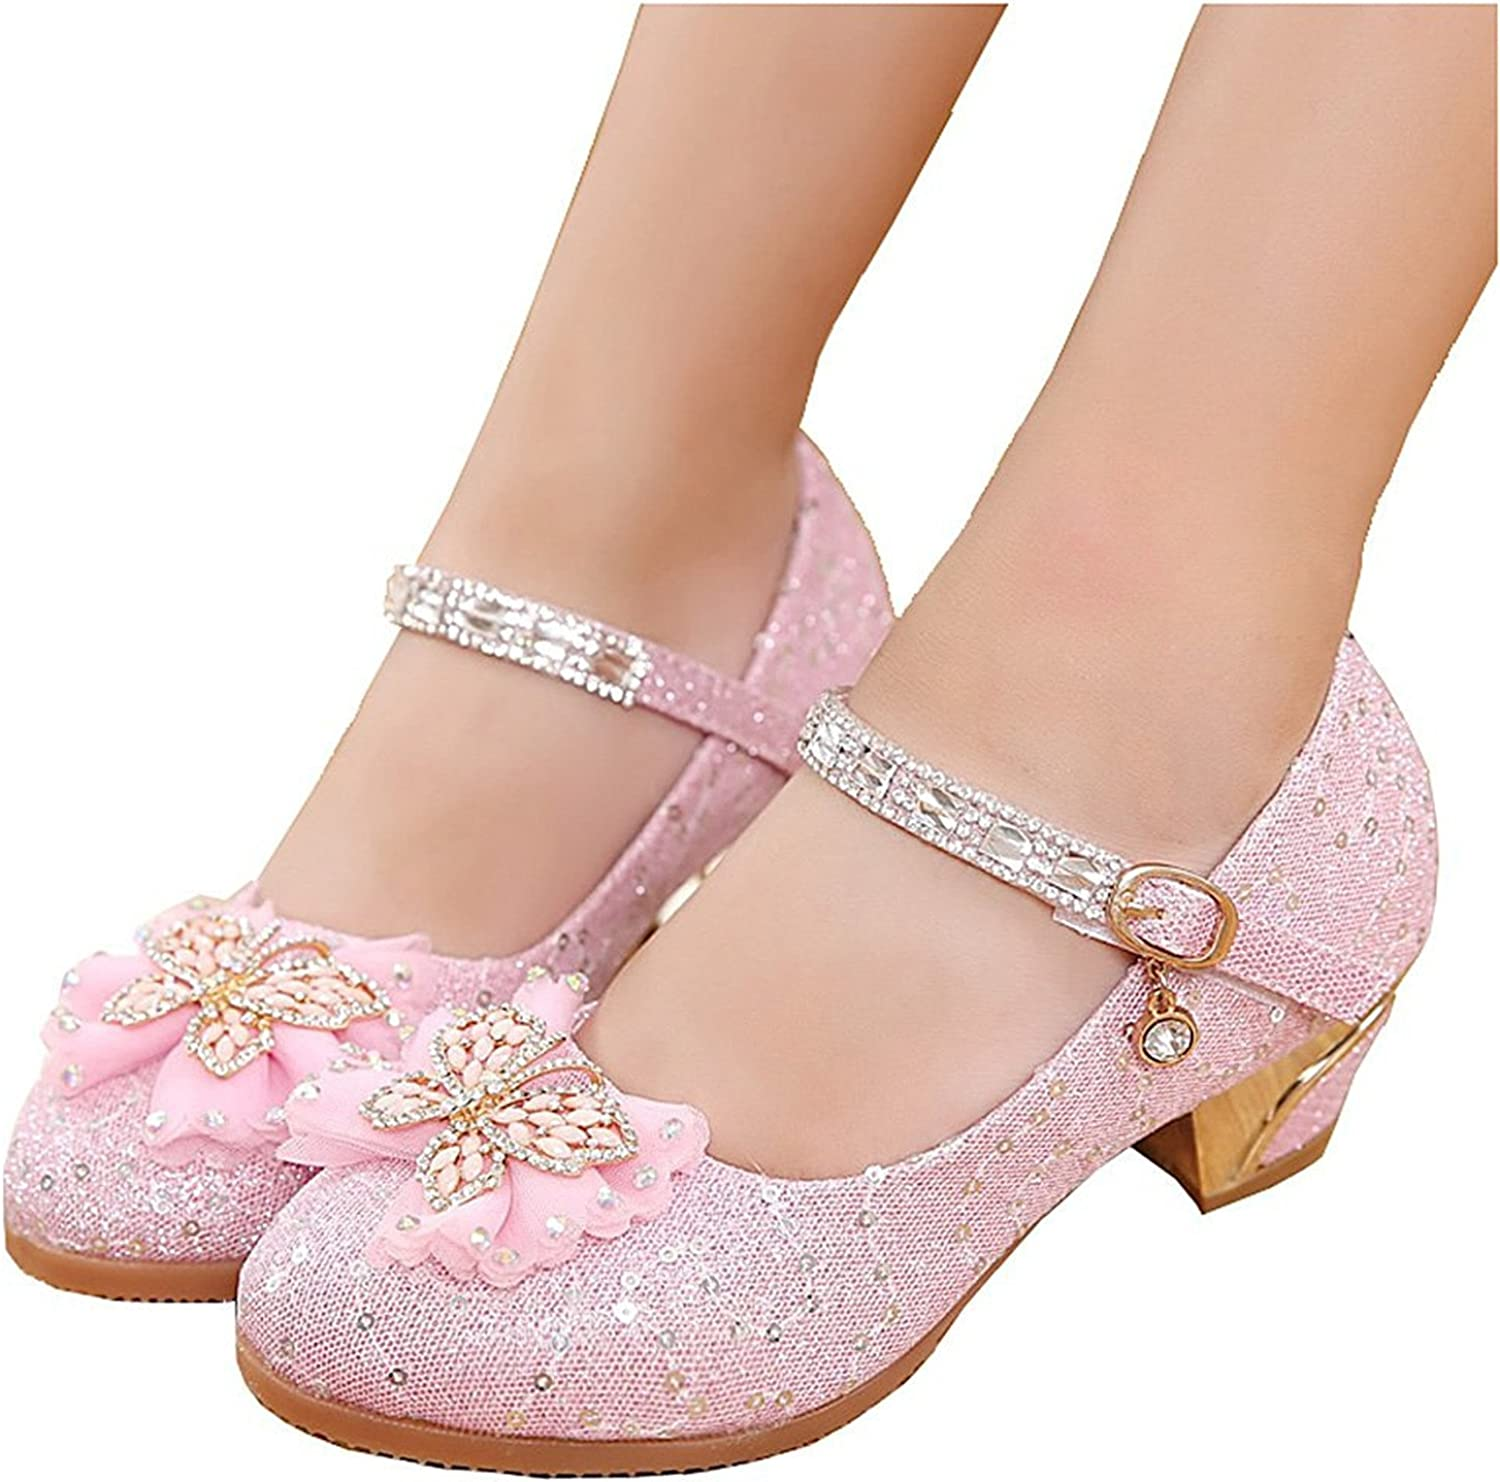 Pilusooou Elegant Girls Mary Janes Communion Party Flower Gilrs shoes